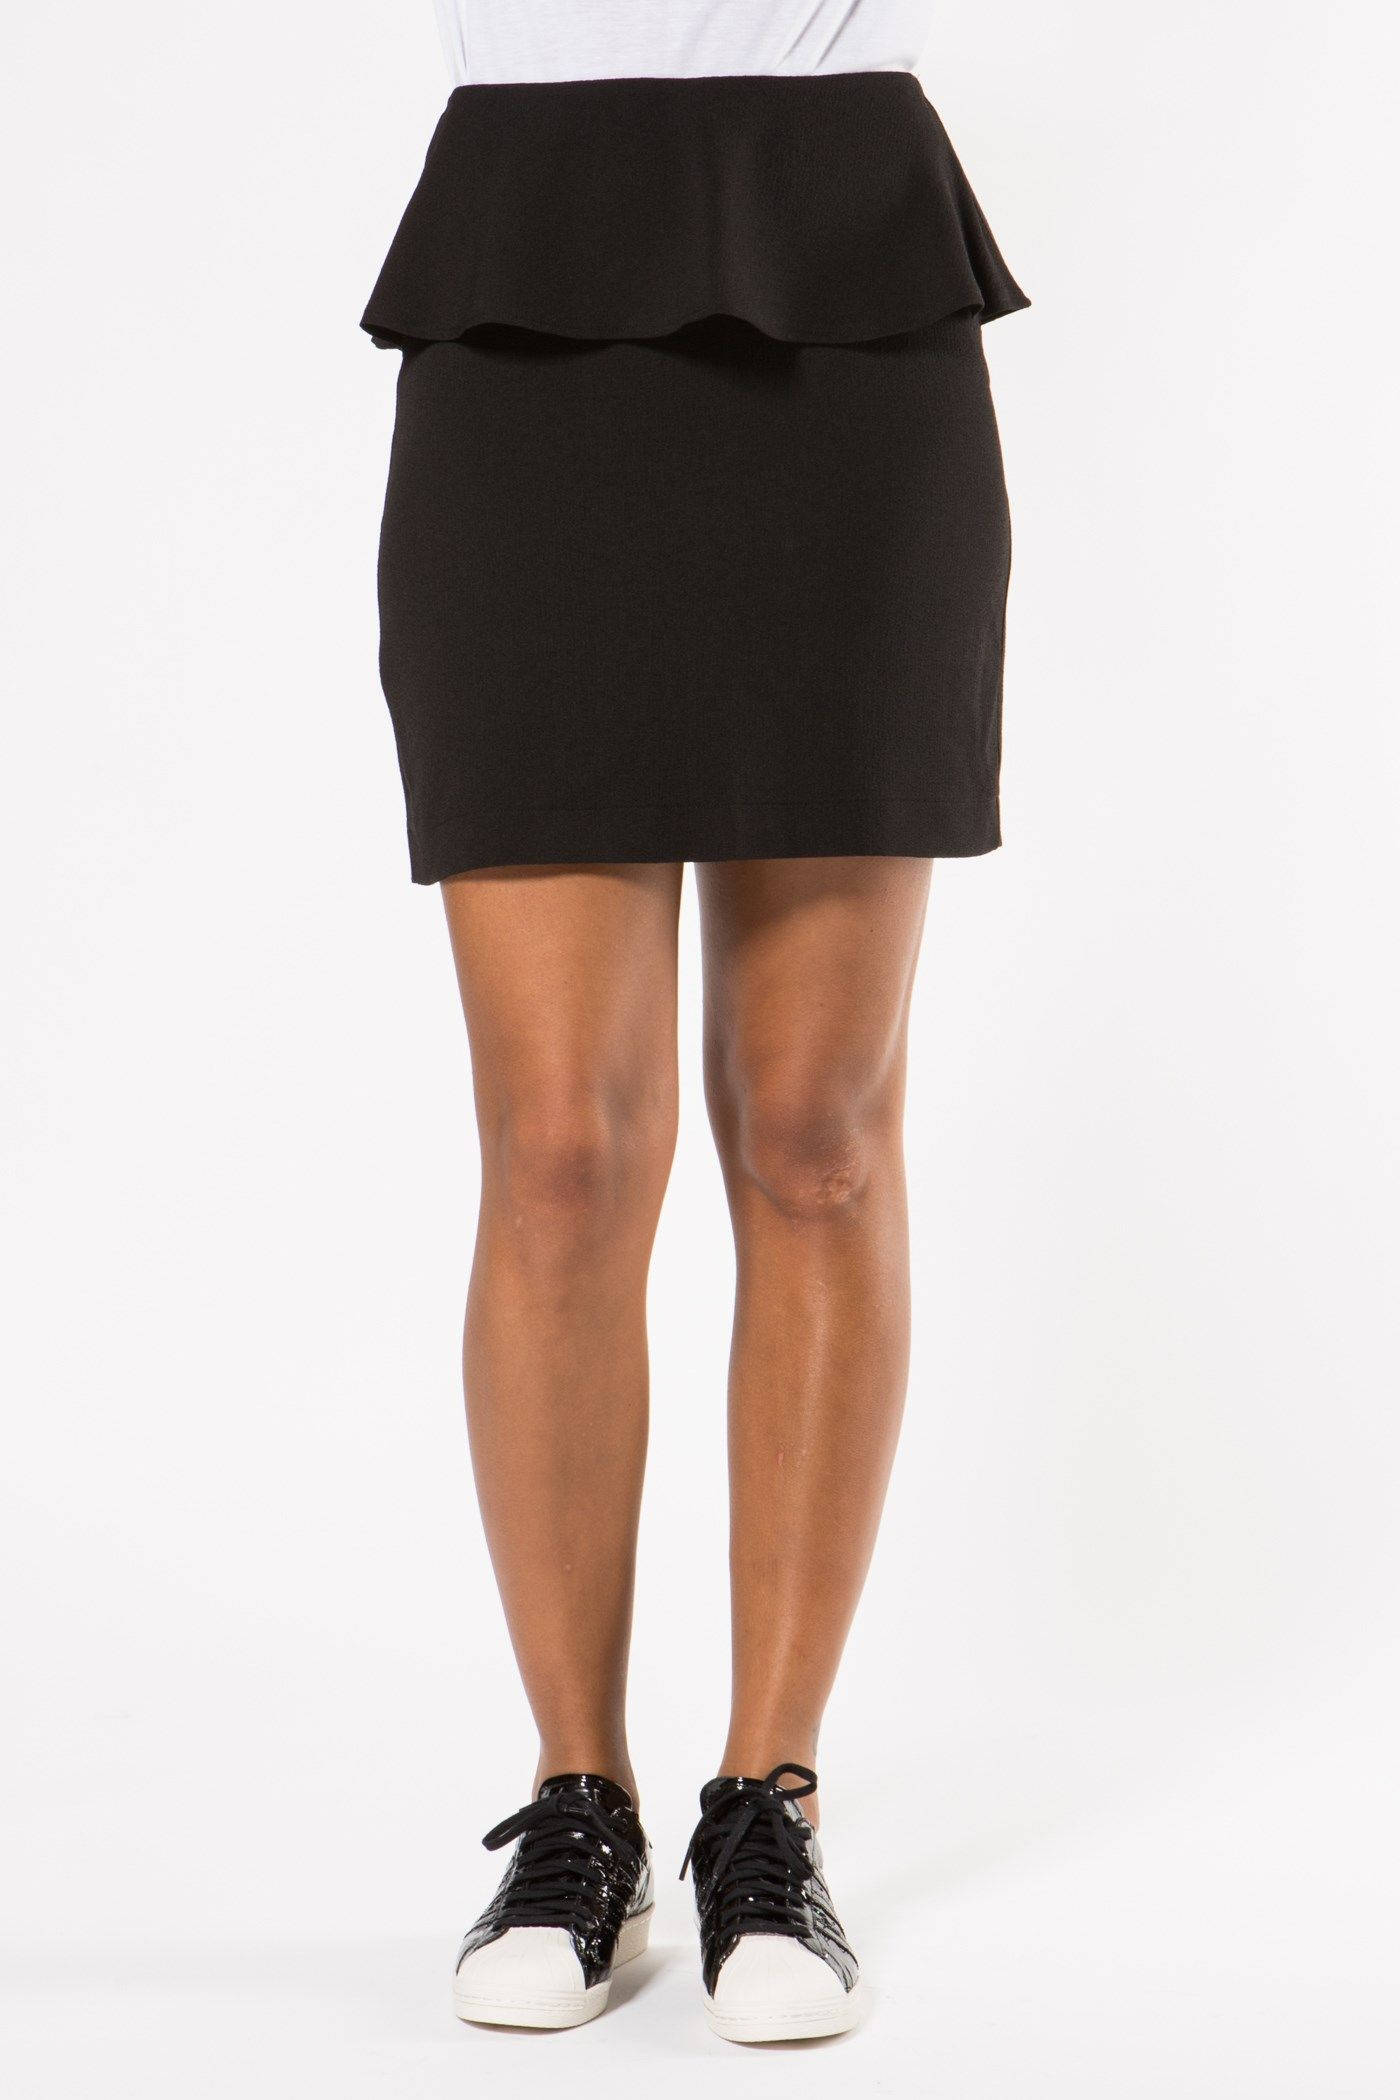 Ganni - Clark Skirt Black large-1